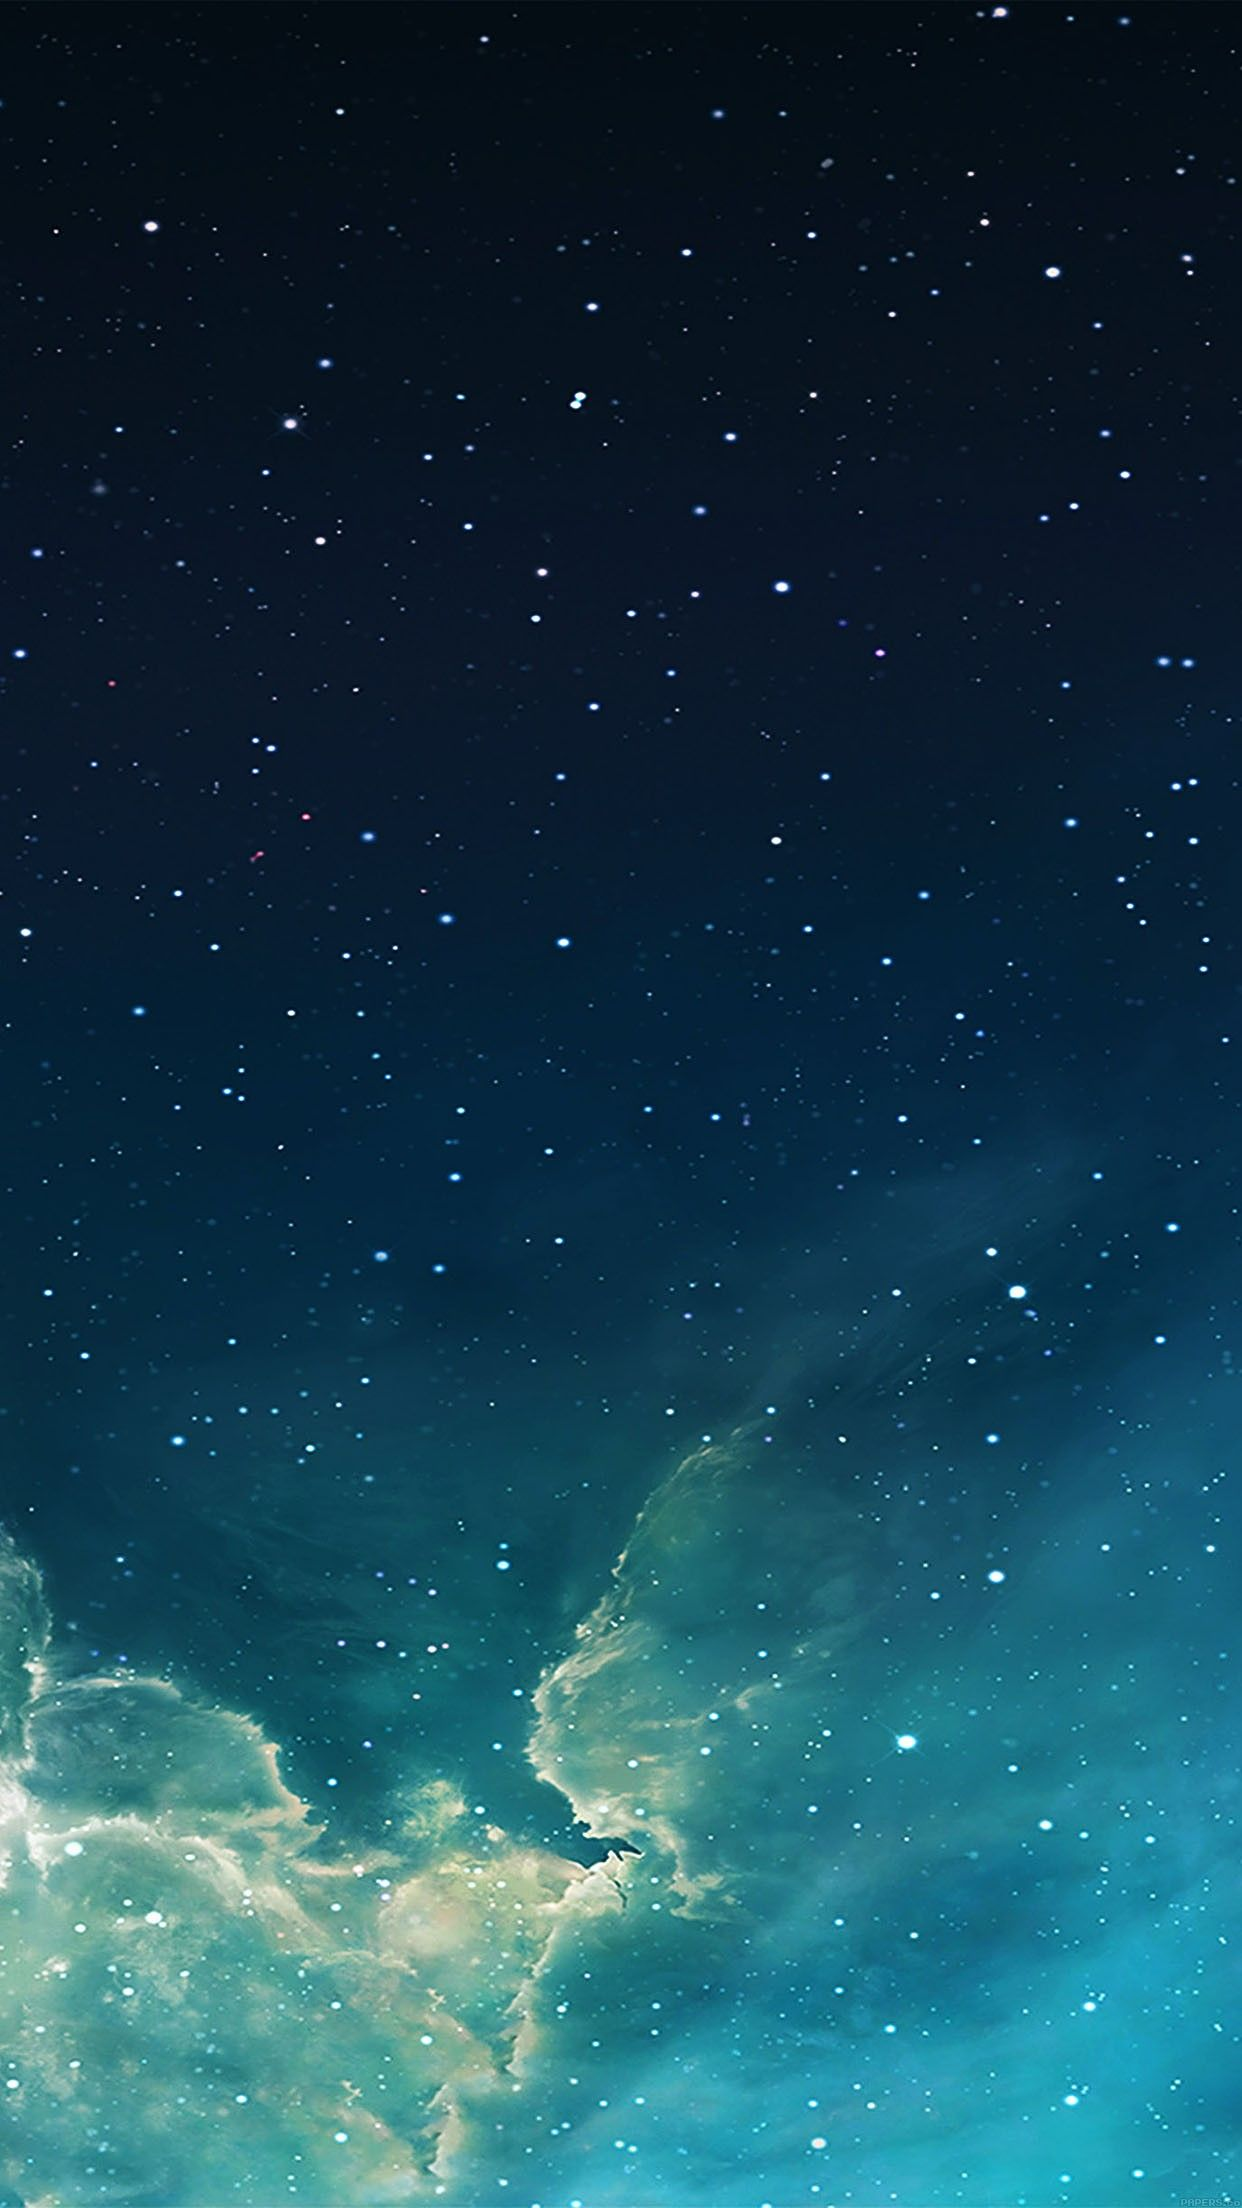 Wallpaper iphone sky - Wallpaper Galaxy Blue 7 Starry Star Sky Iphone 6 Plus Wallpapers Daily Best